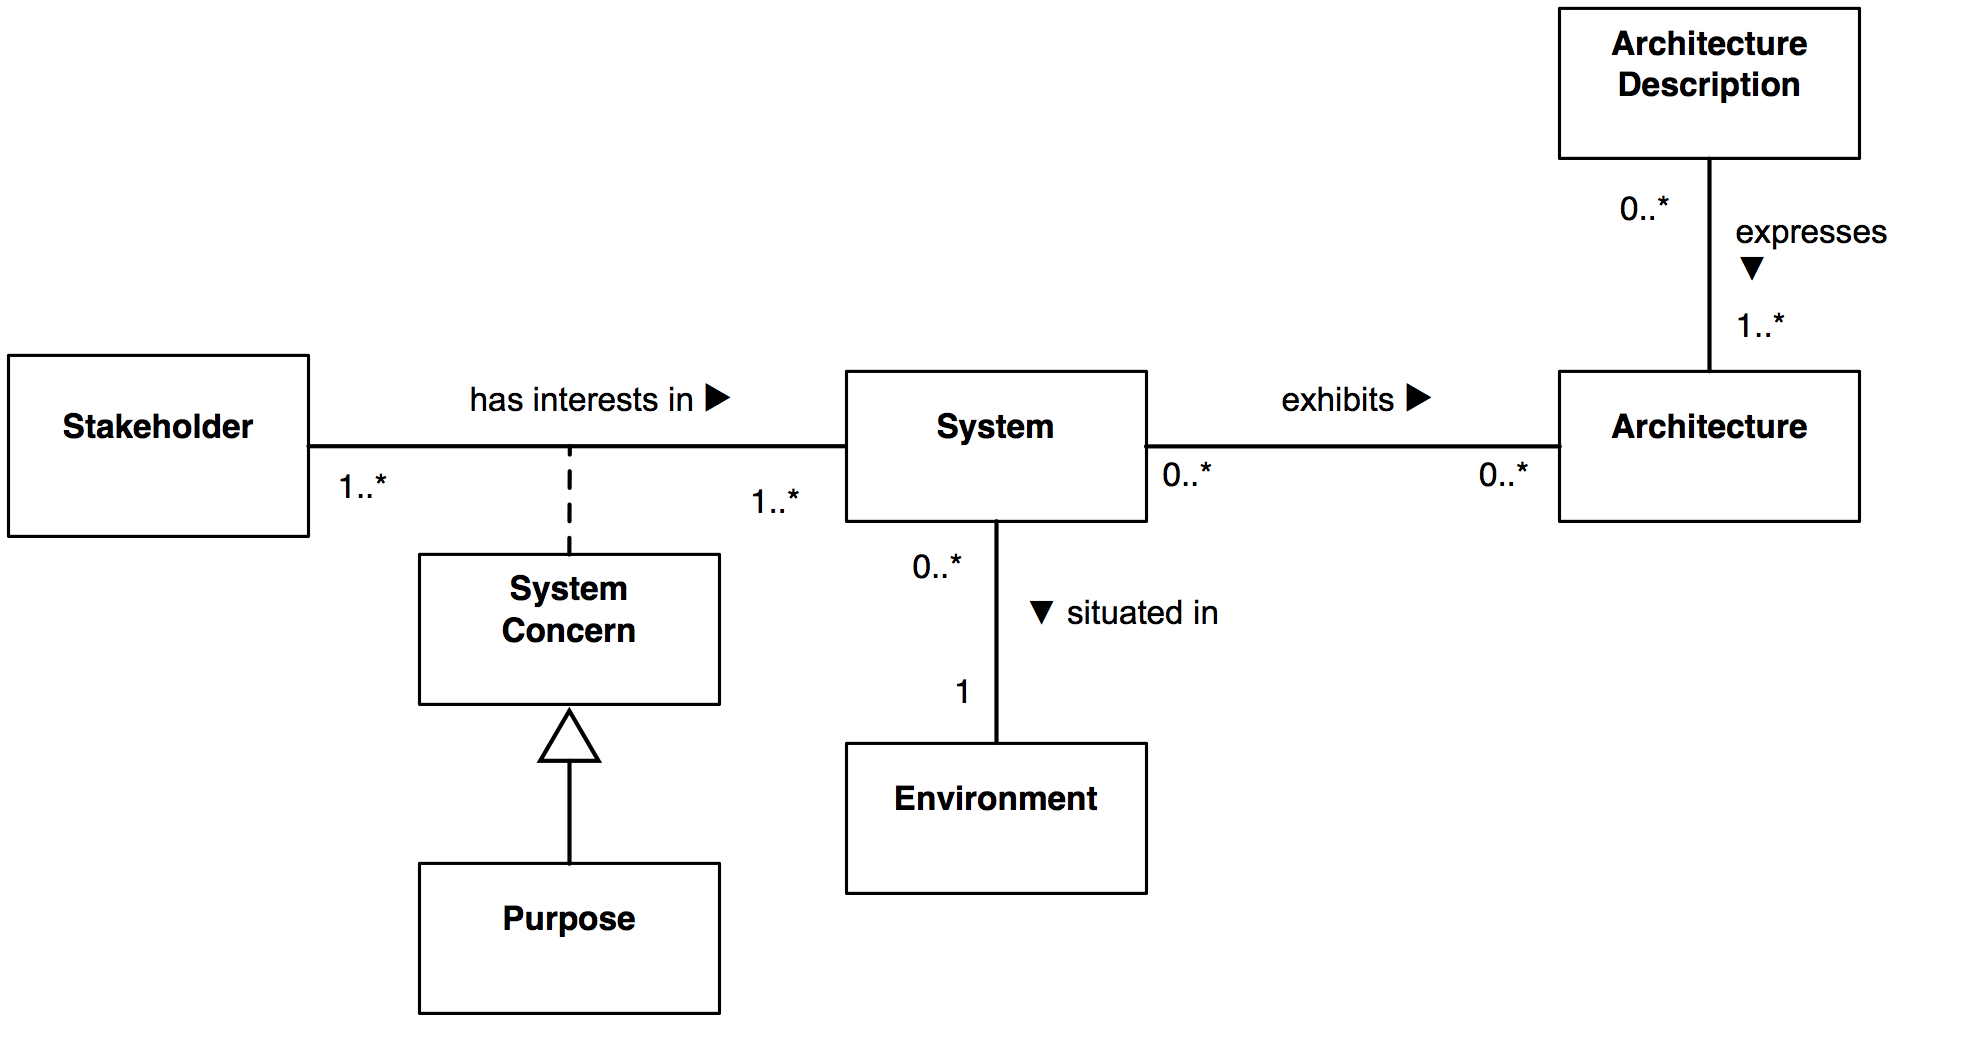 Iso Iec Ieee 42010 Conceptual Model There Are 4 Diagrams Depending On Which System You Have I Context Of Architecture Description